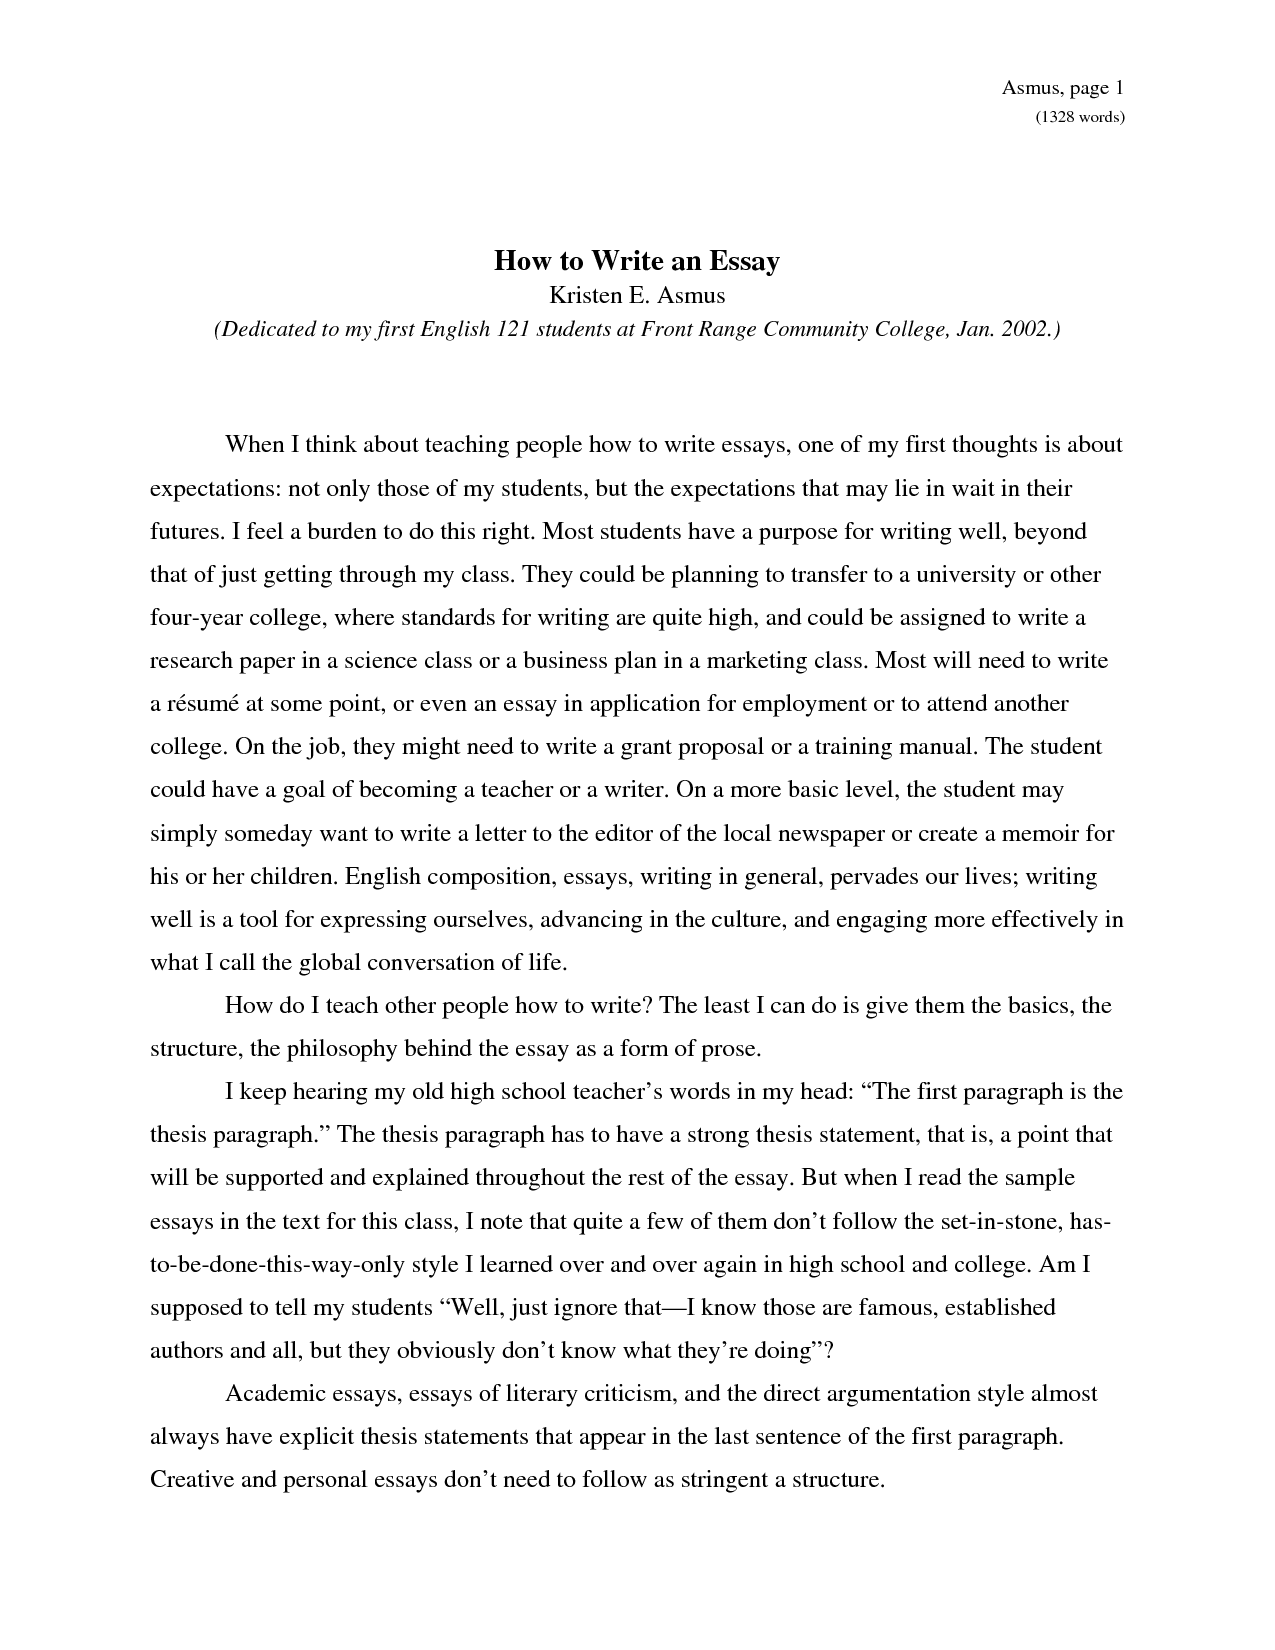 005 How To Essays Essay Example Write An Obfuscata Sample Of L Excellent Expository For 4th Grade Make Longer With Words Start Introduction Full